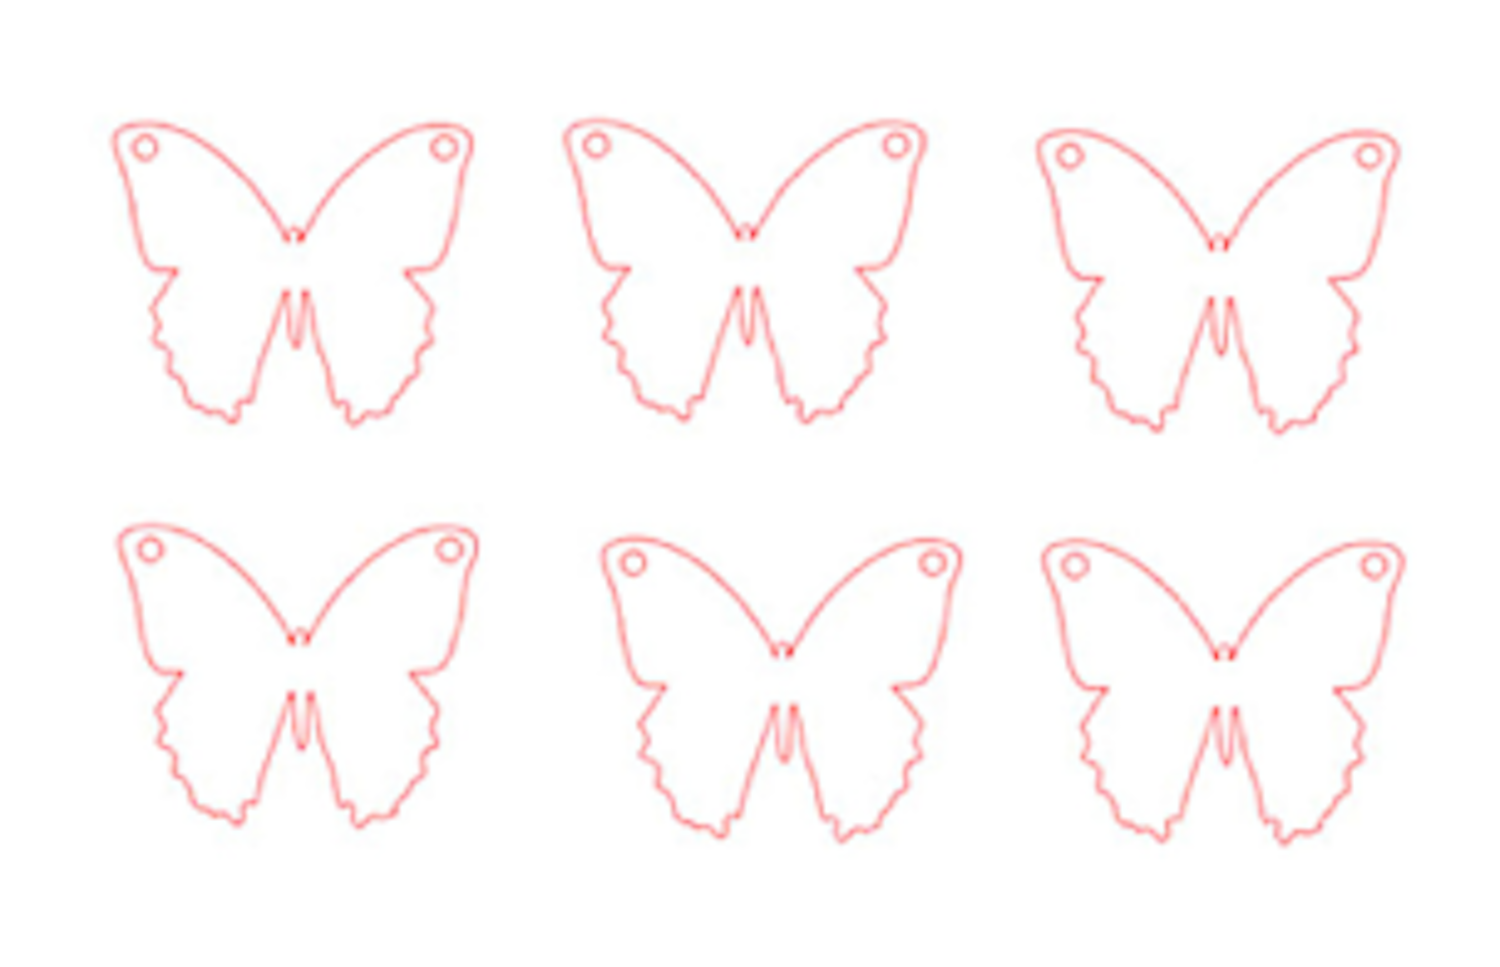 step 1 -  The Butterfly   Print the butterfly template page on card stock. Cut out the six butterflies with a craft knife or stencil cutting machine.